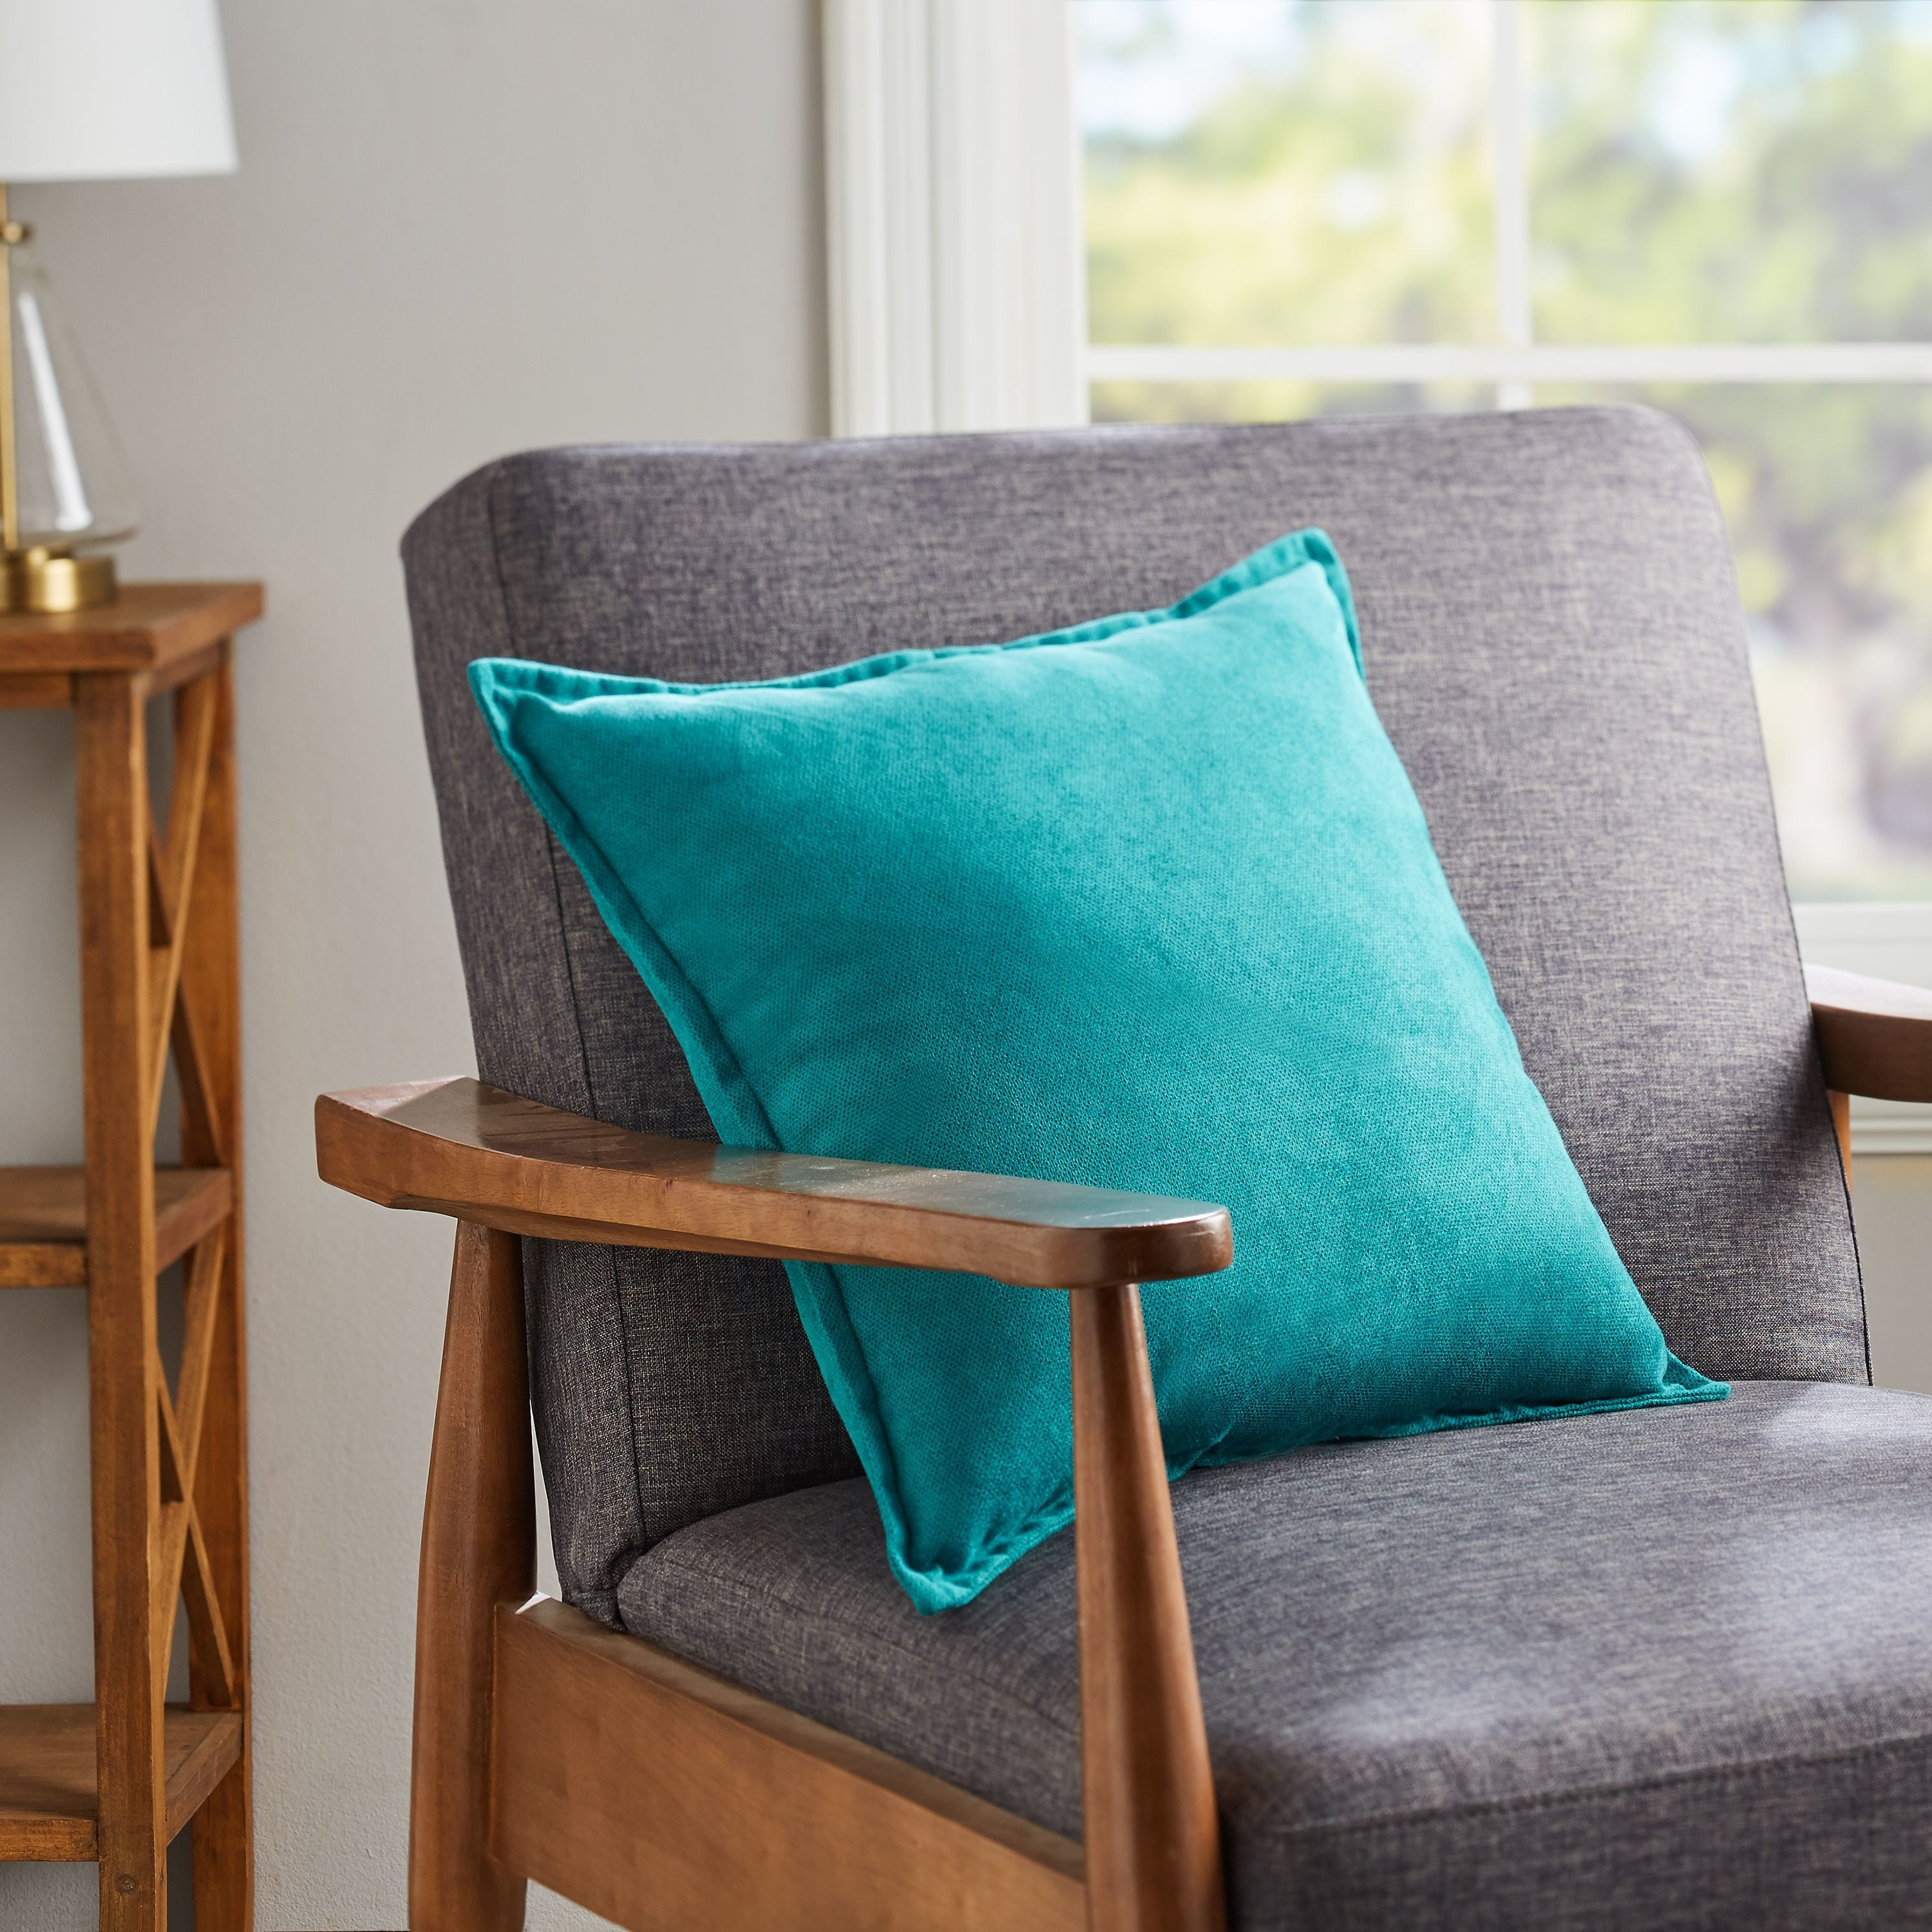 A chair with a bright blue pillow on it